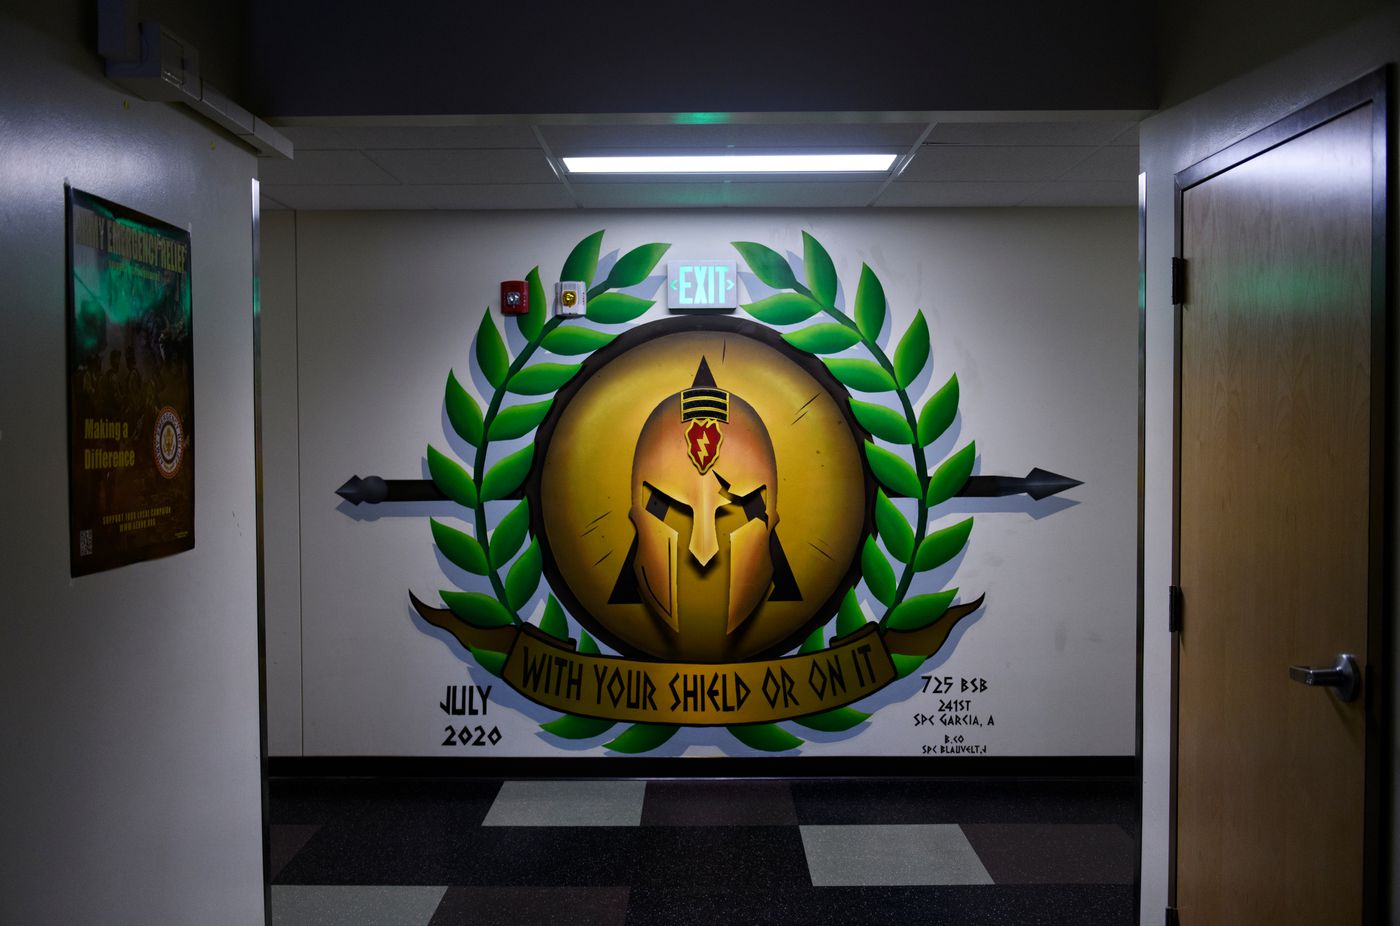 A mural Spc. Andrew Garcia created for the headquarters of the 4th Brigade Combat Team (Airborne), 25th Infantry Division, includes a metal Spartan helmet protruding from the wall. (Marc Lester / ADN)